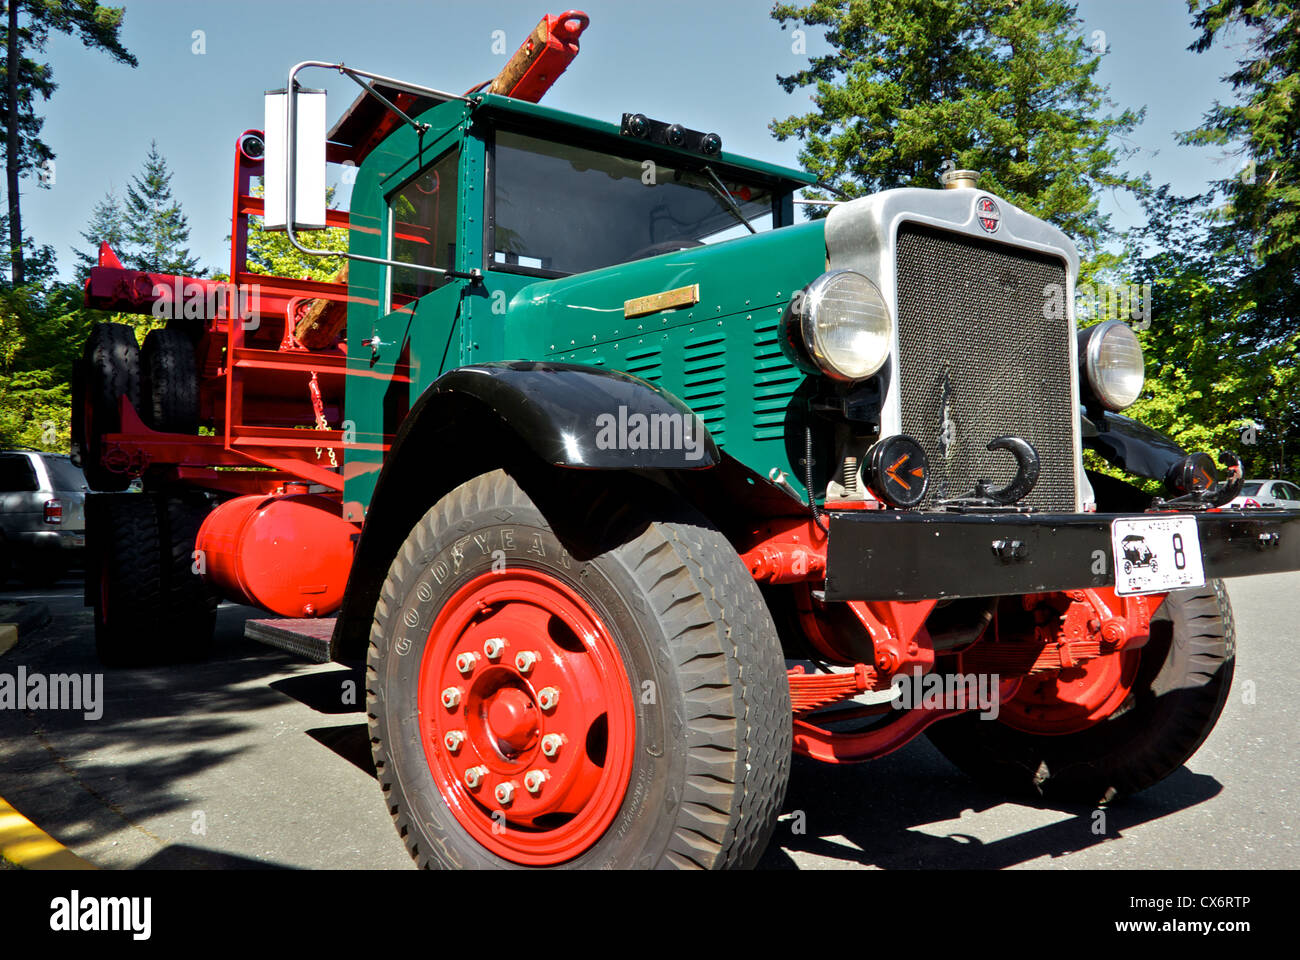 Restored vintage antique Kenworth logging truck on display Museum at Campbell River BC Canada - Stock Image